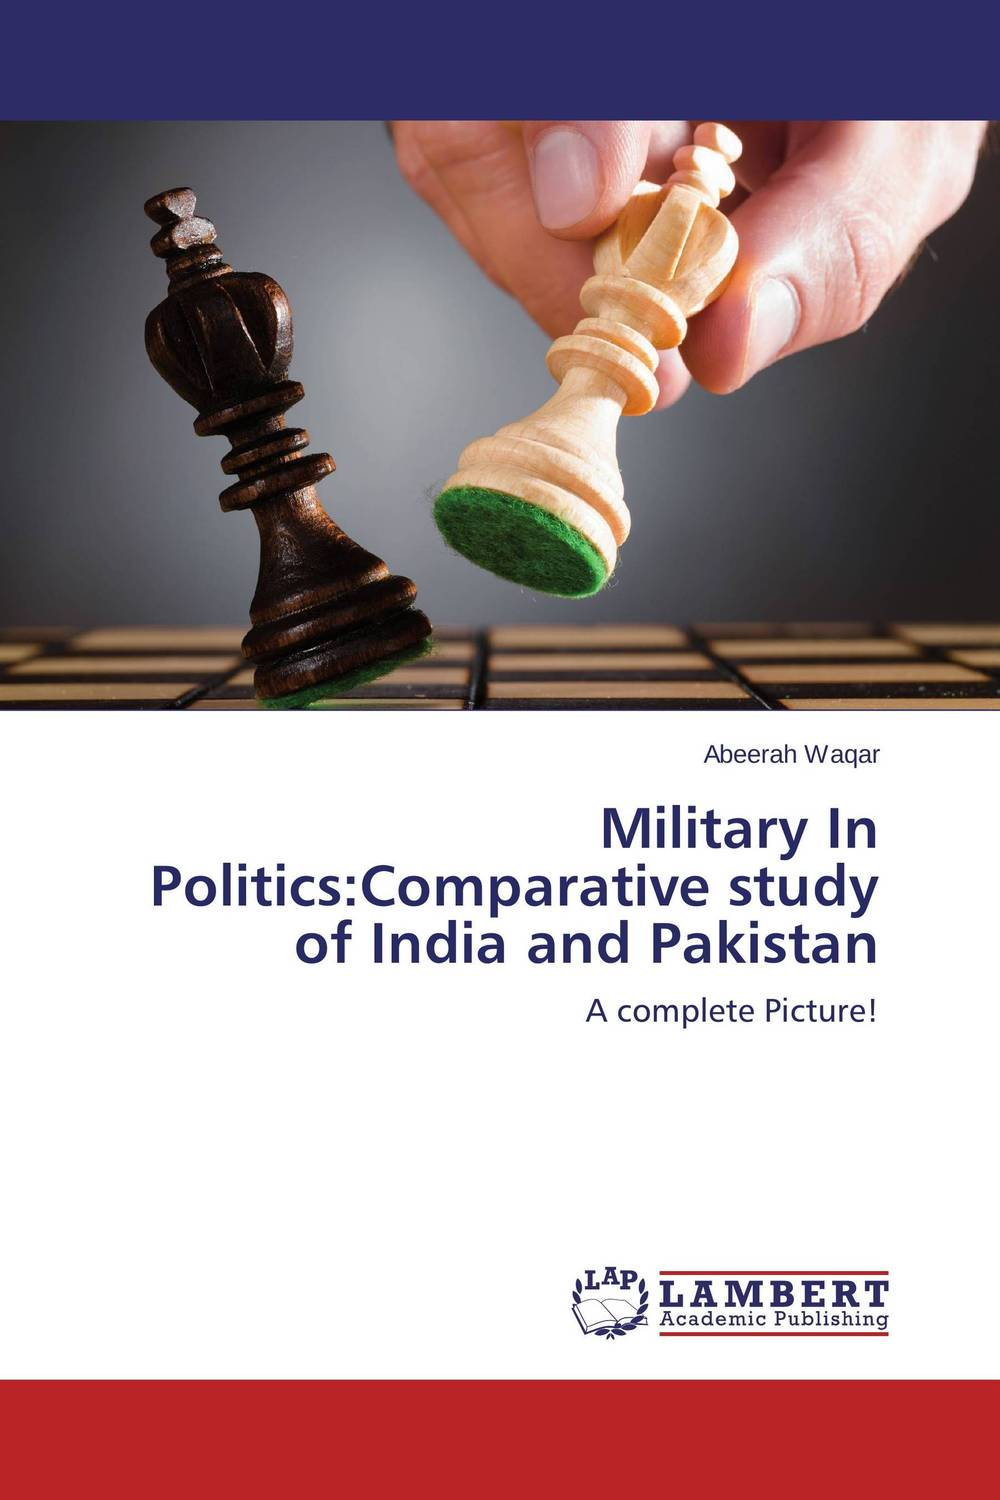 Military In Politics:Comparative study of India and Pakistan democracy and dictatorship in uganda a politics of dispensation